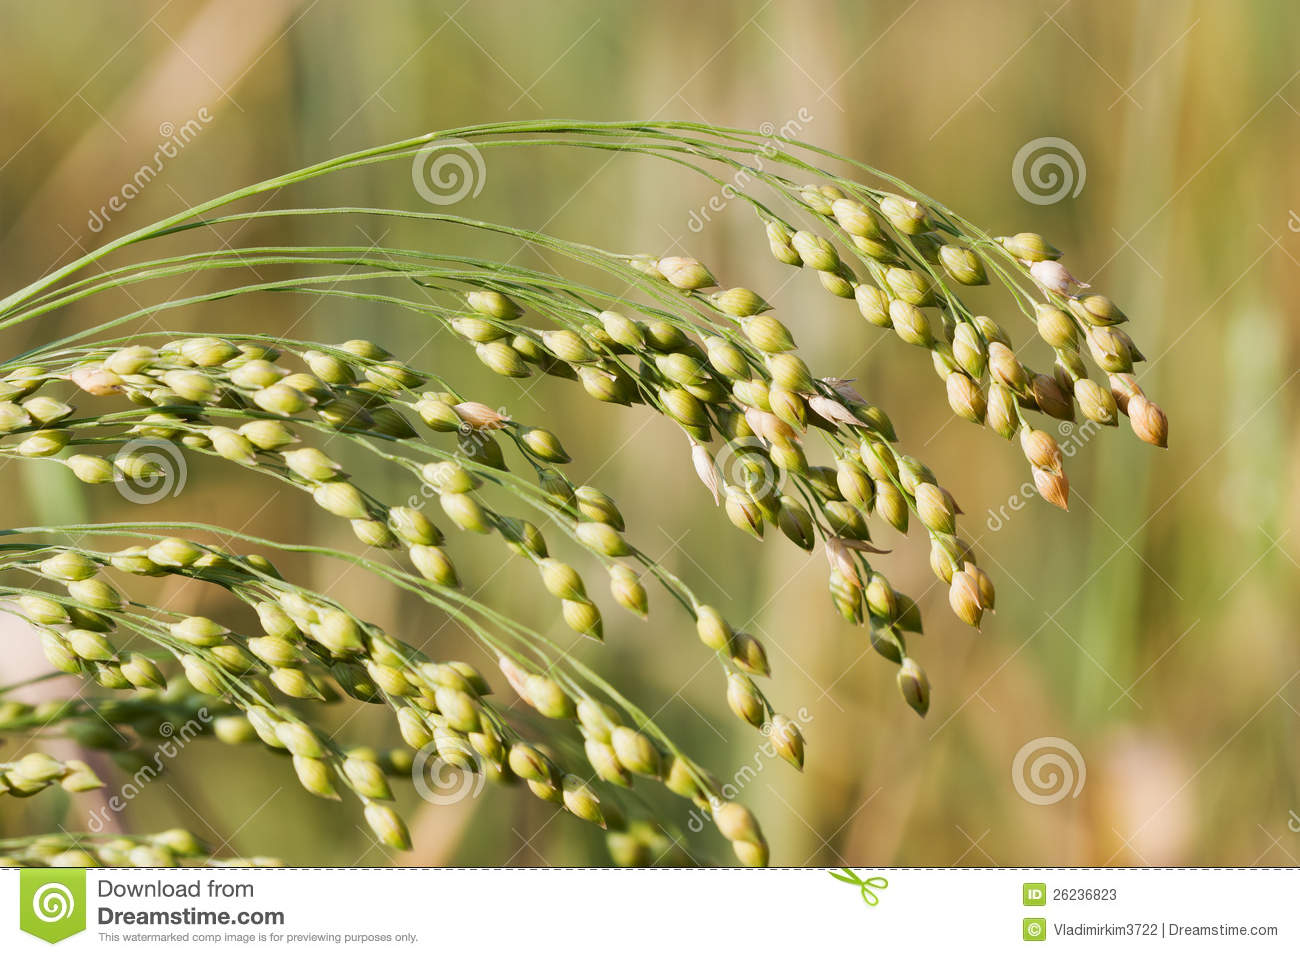 The proso millet plant stock image. Image of nutrition ...